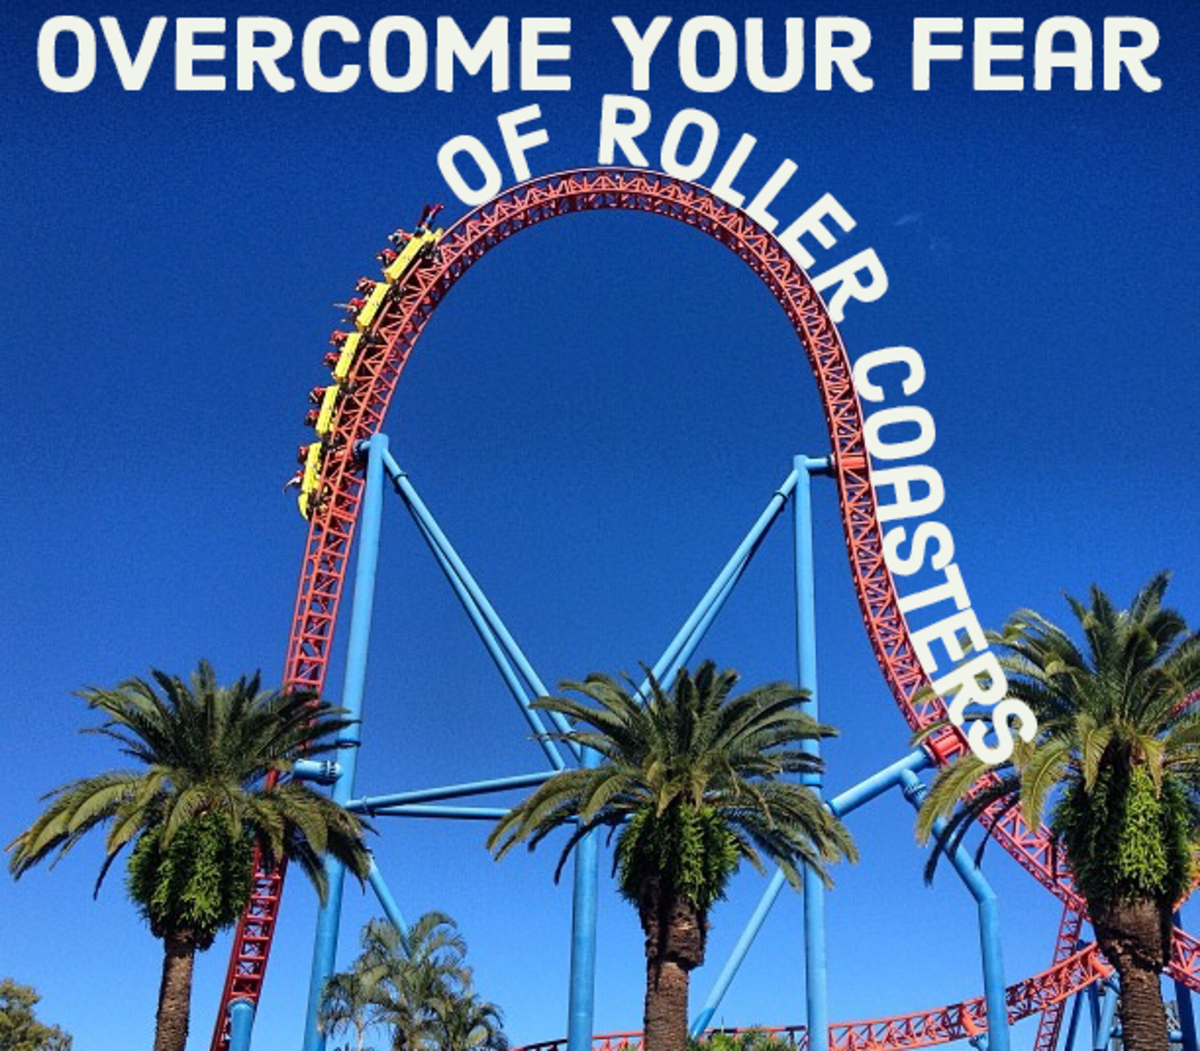 How to overcome your fear of roller coasters. Here is the Superman Escape in Oxenford, Australia.